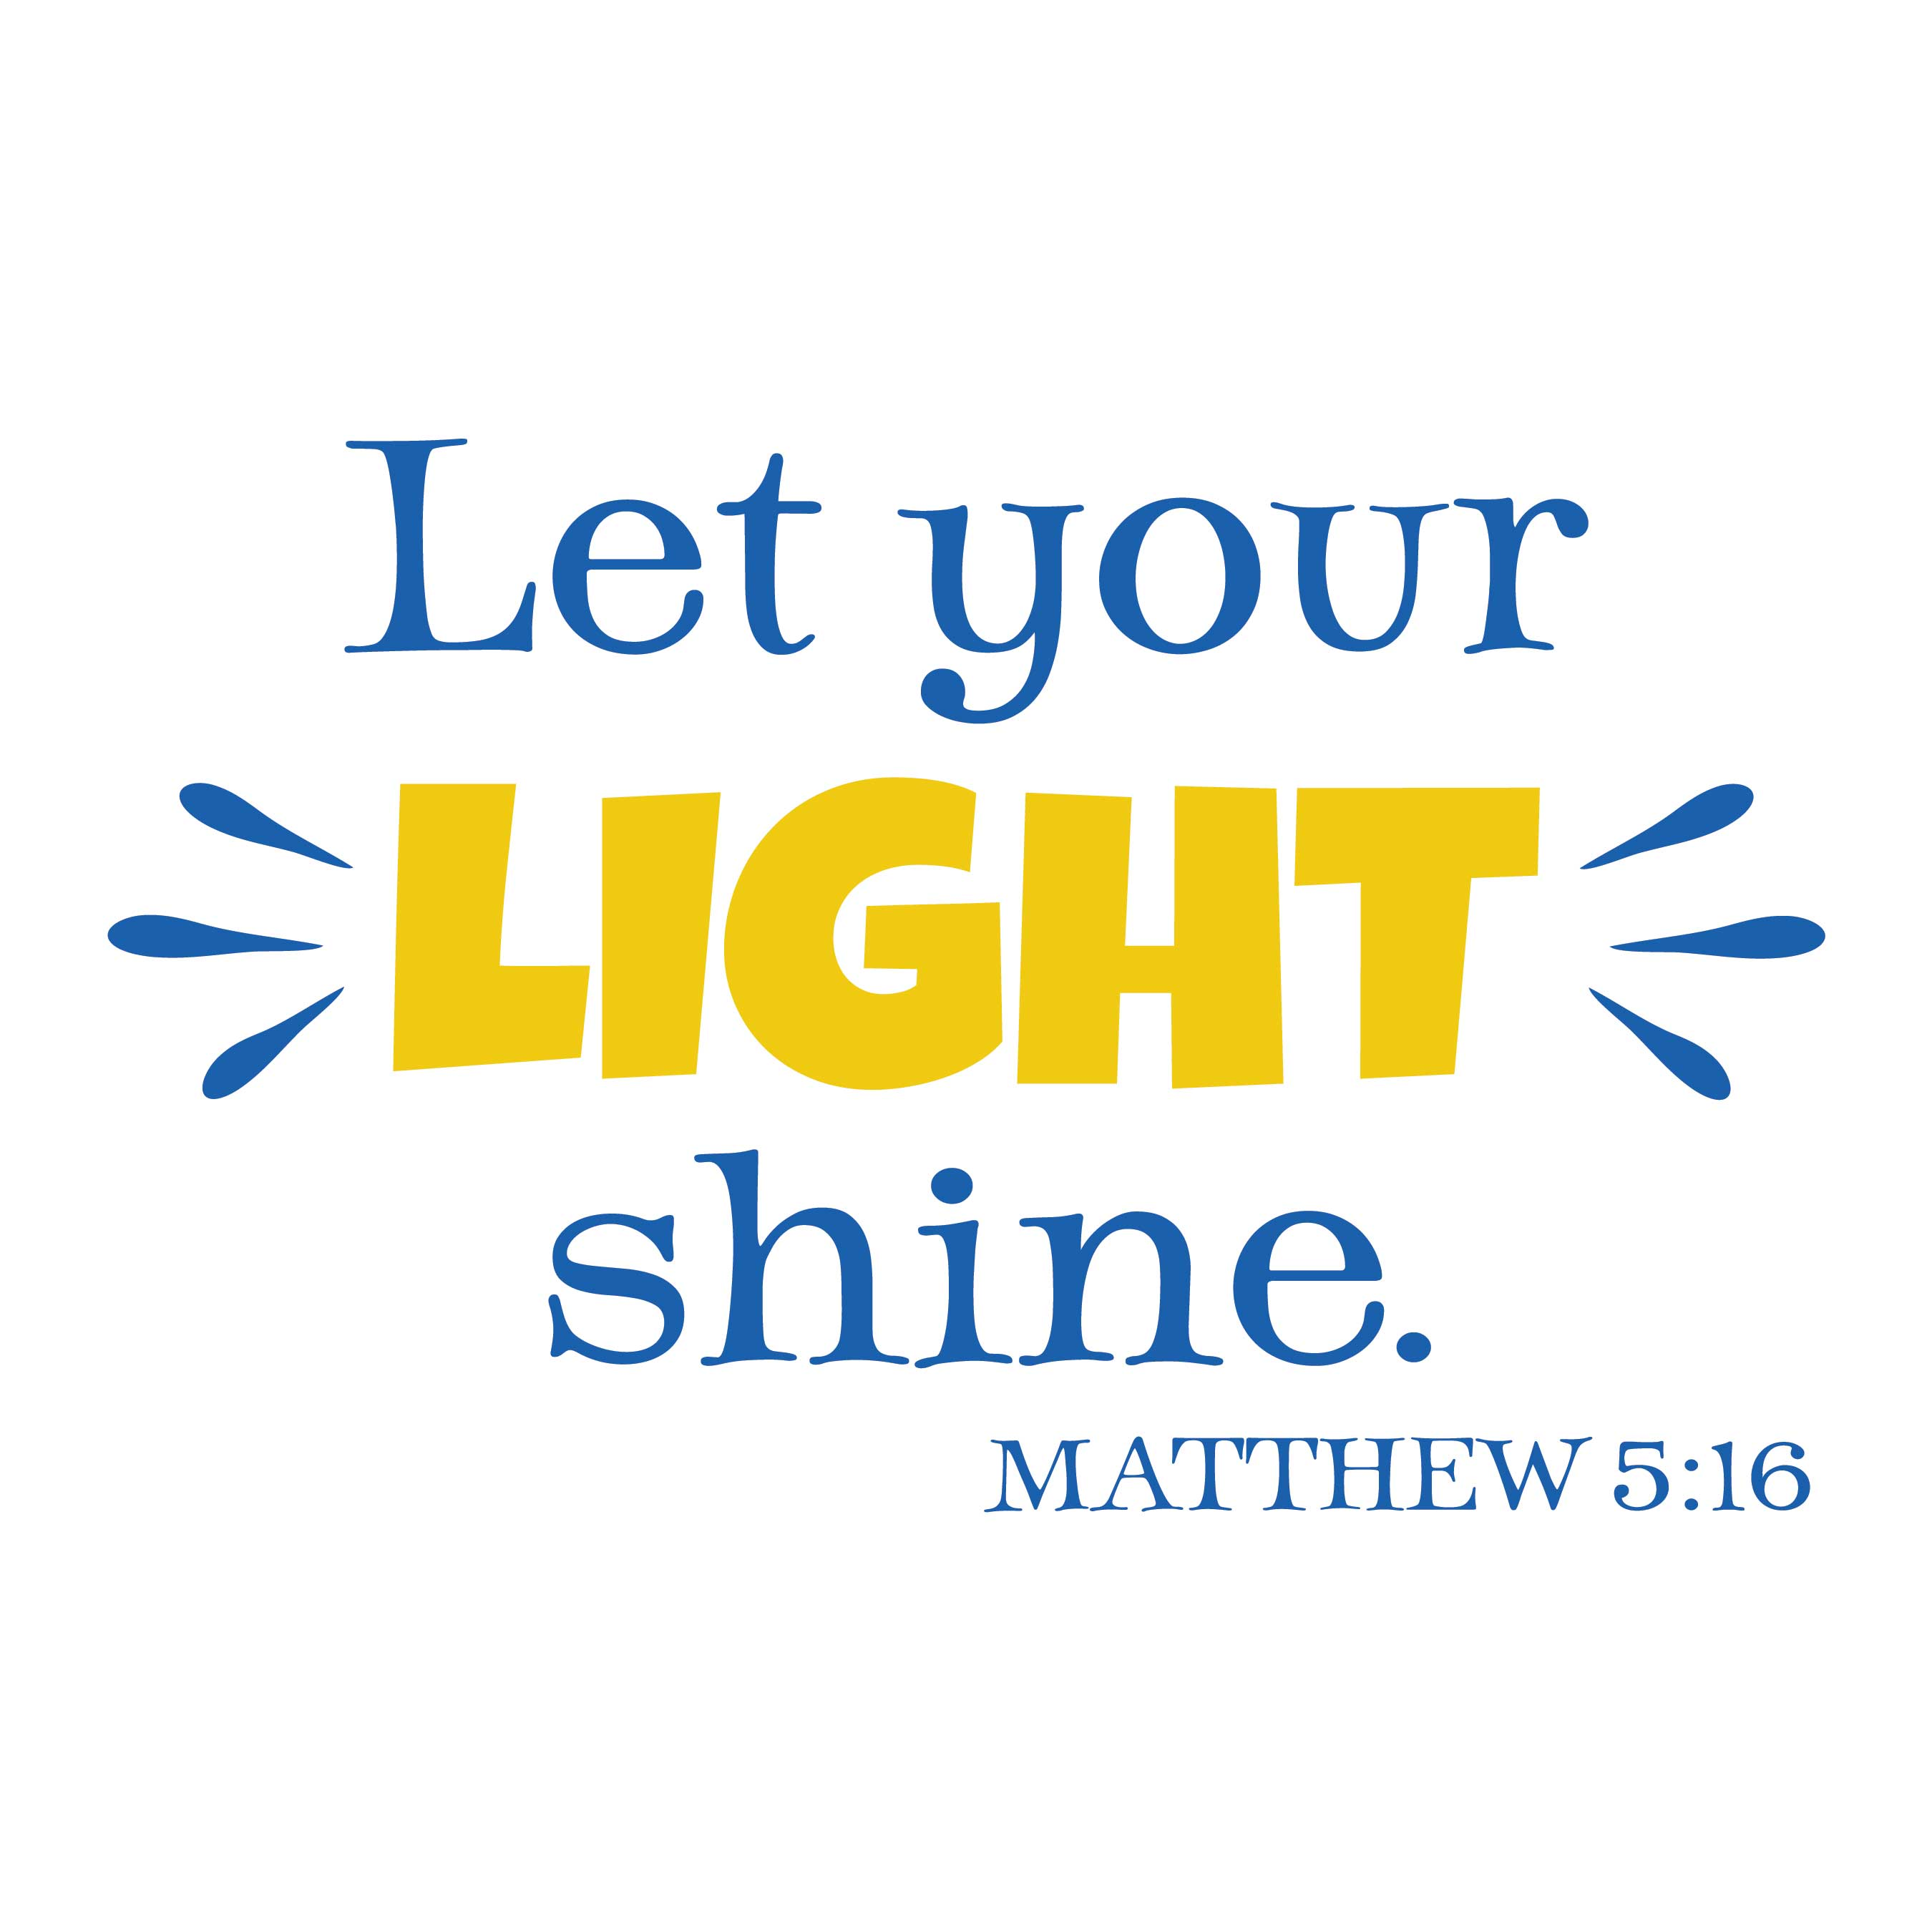 Matthew 5:16 Vinyl Wall Decal 1 by Wild Eyes Signs Let Your Light ...